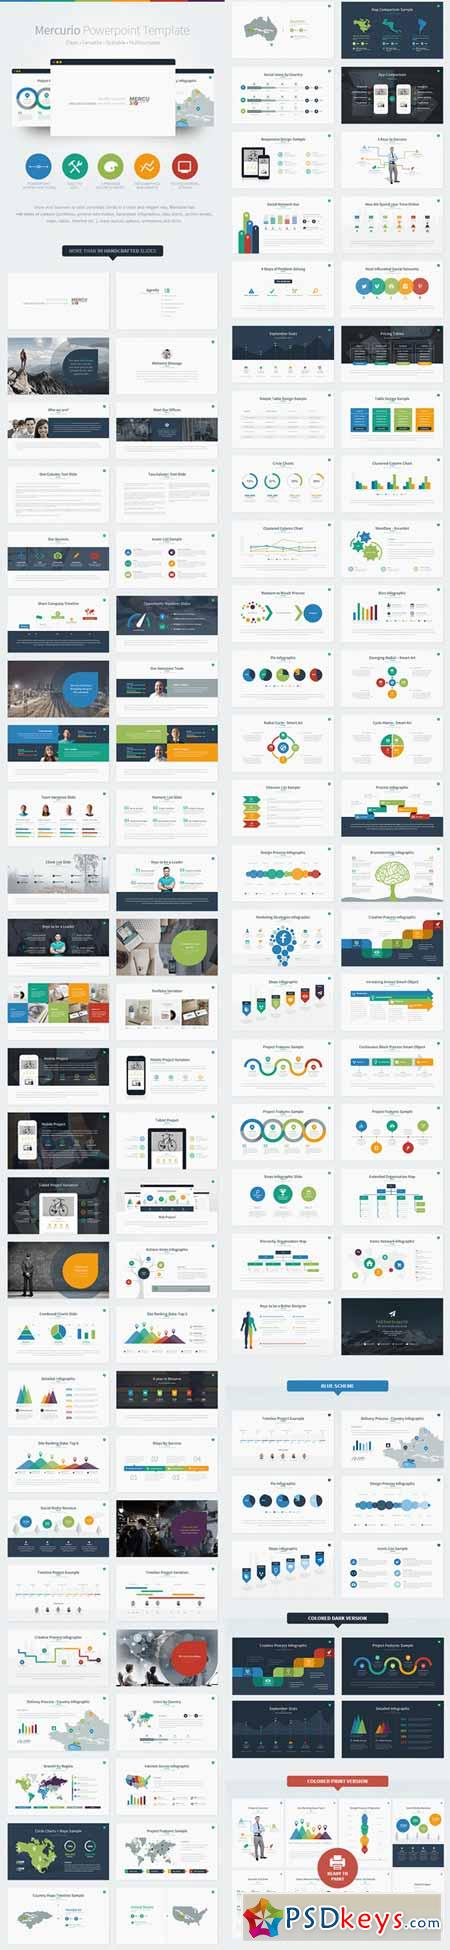 Mercurio powerpoint presentation template 8527176 free for Powerpoint templates torrents